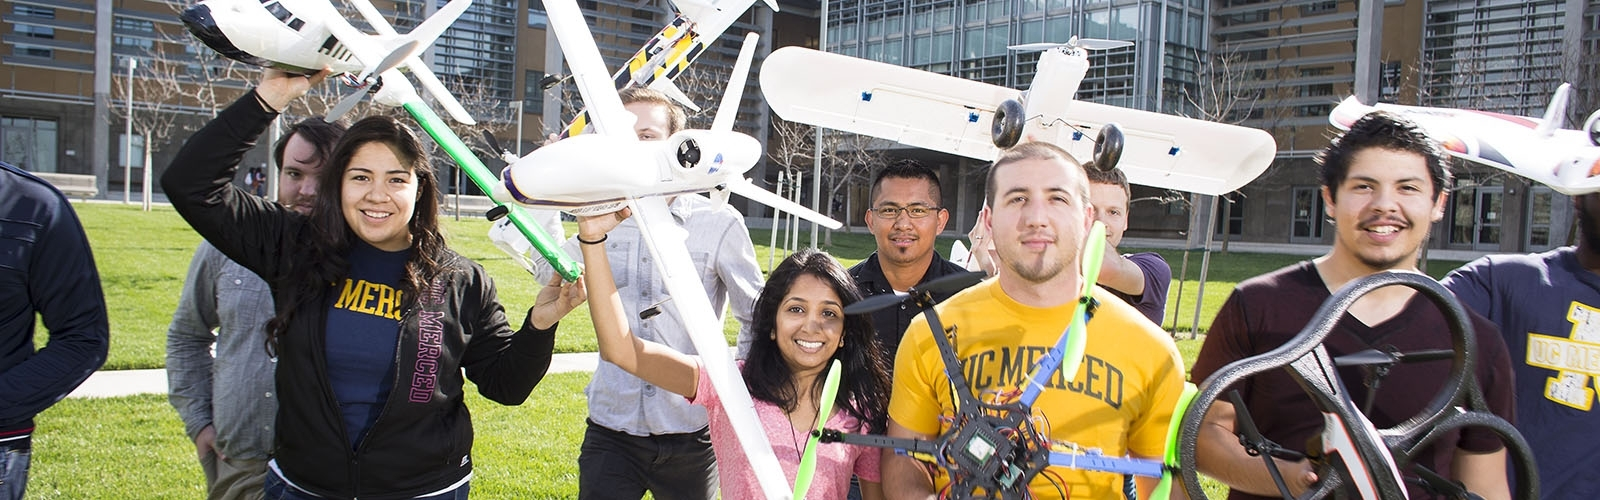 UC Merced's MESA lab students study drones